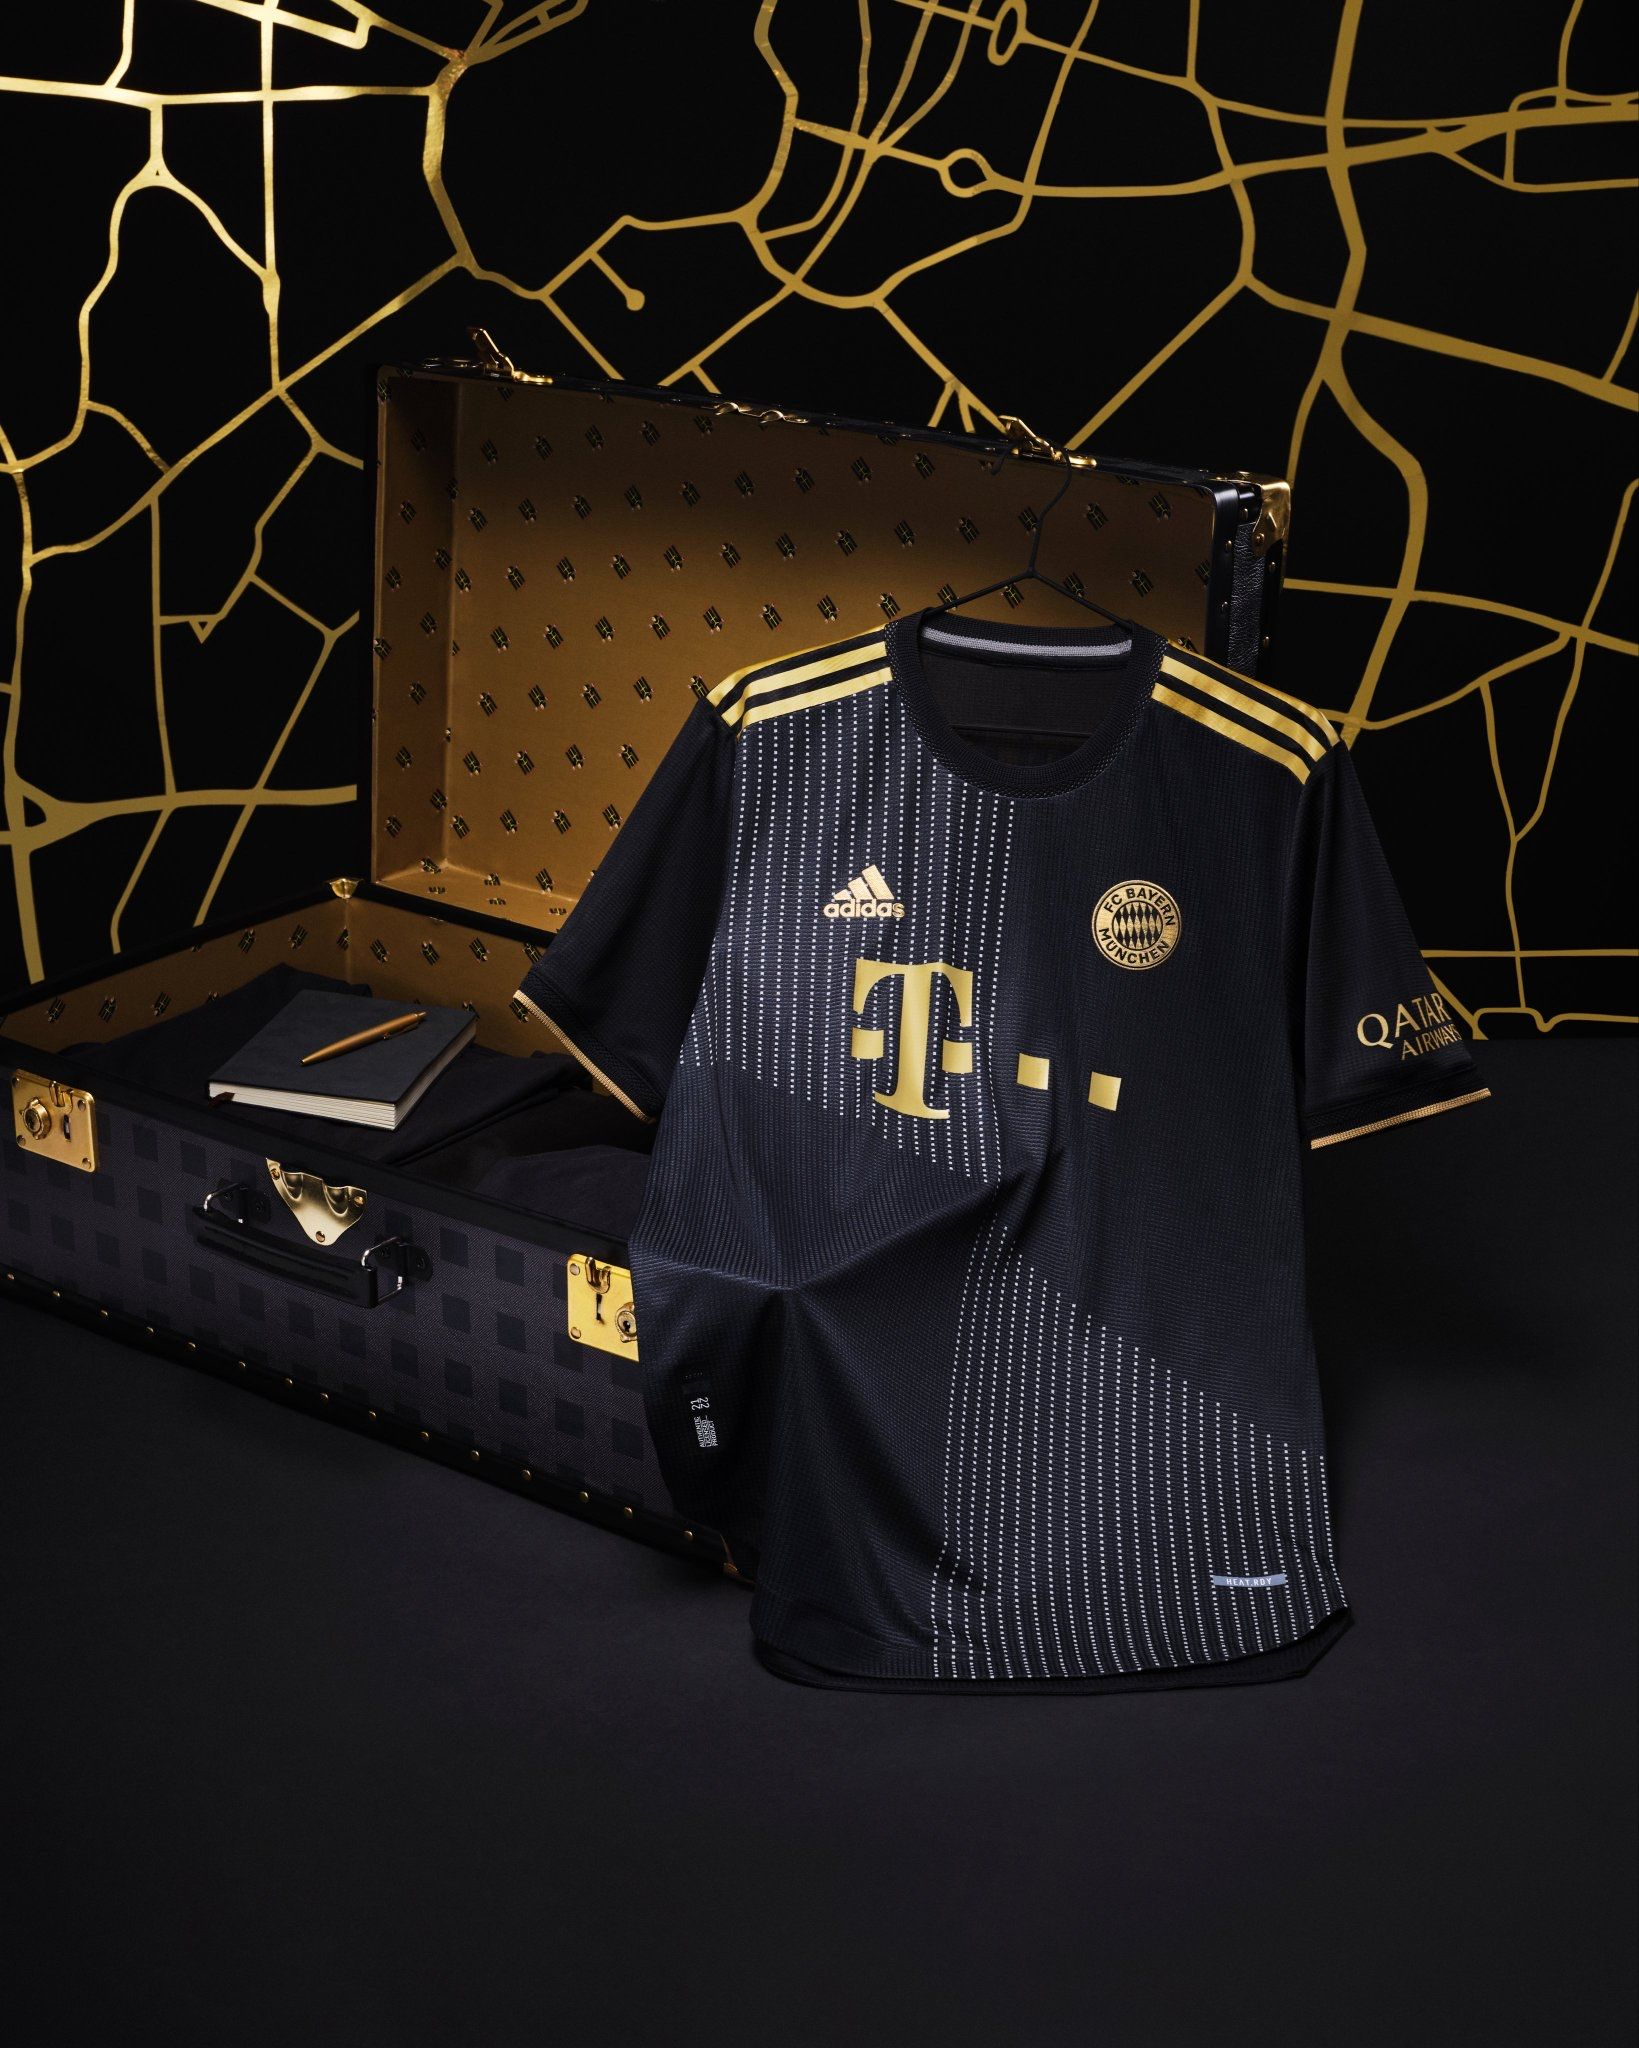 Bayern Munich have released their new away kit for next season.